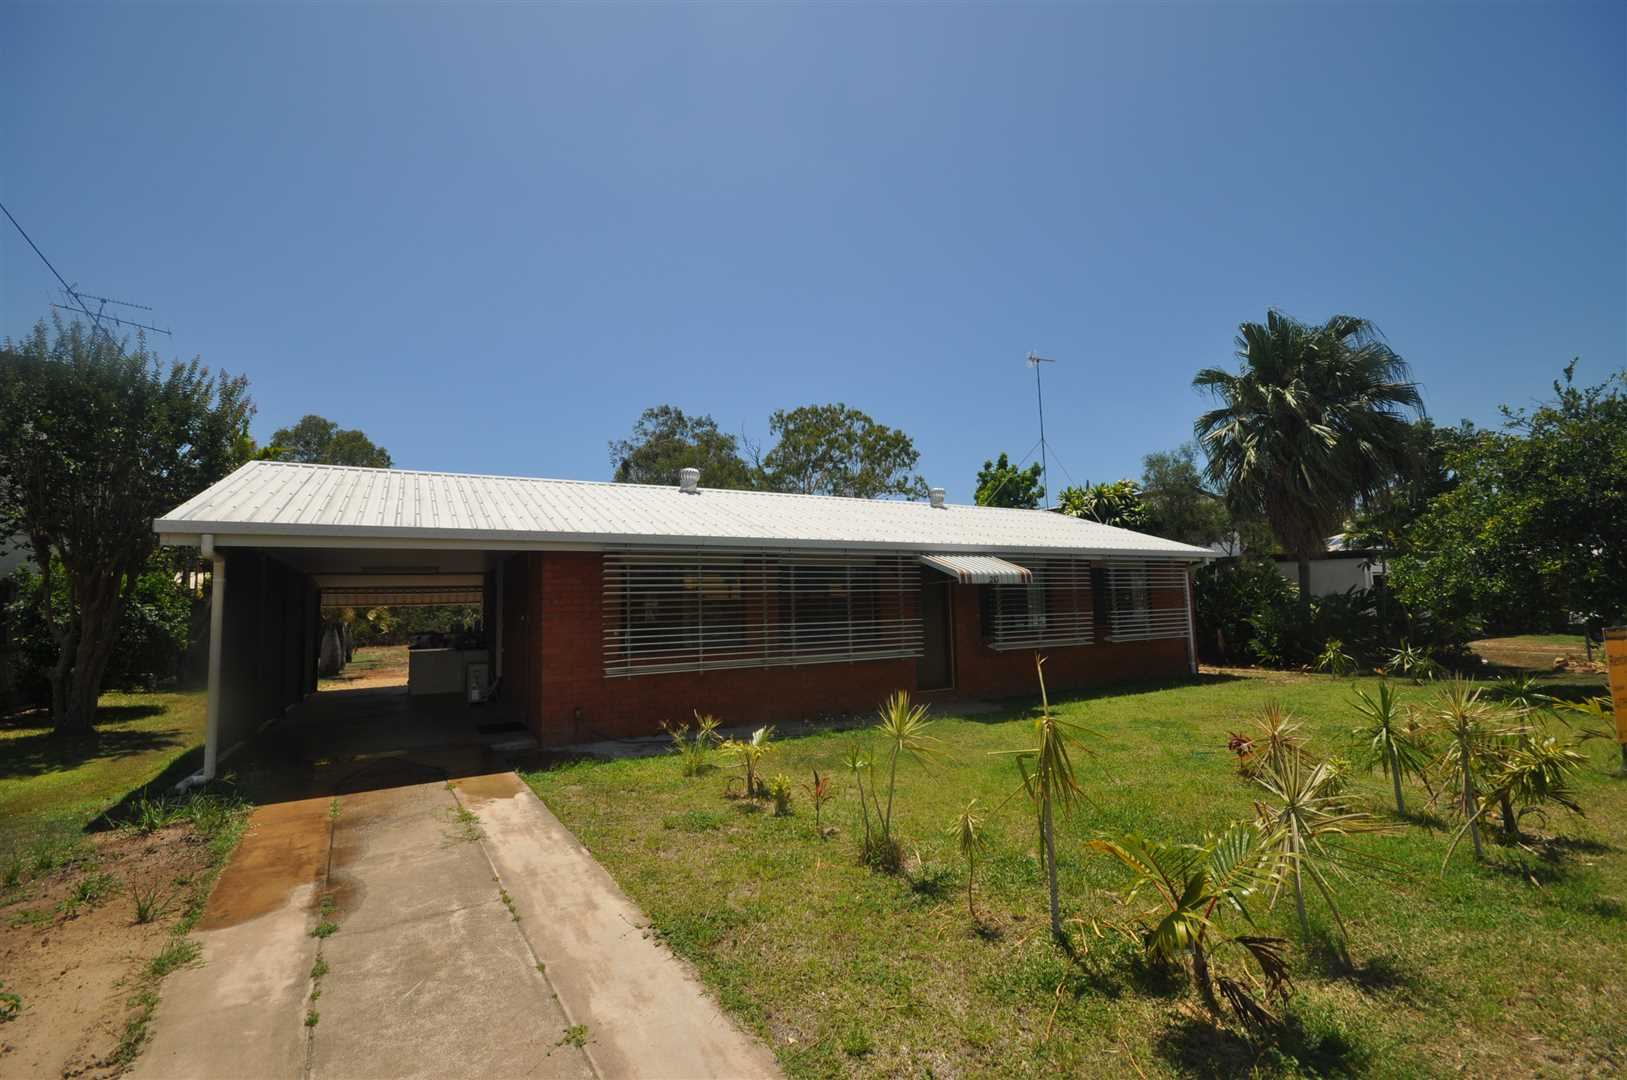 3 bedroom brick home with back patio.  Walking distance to t